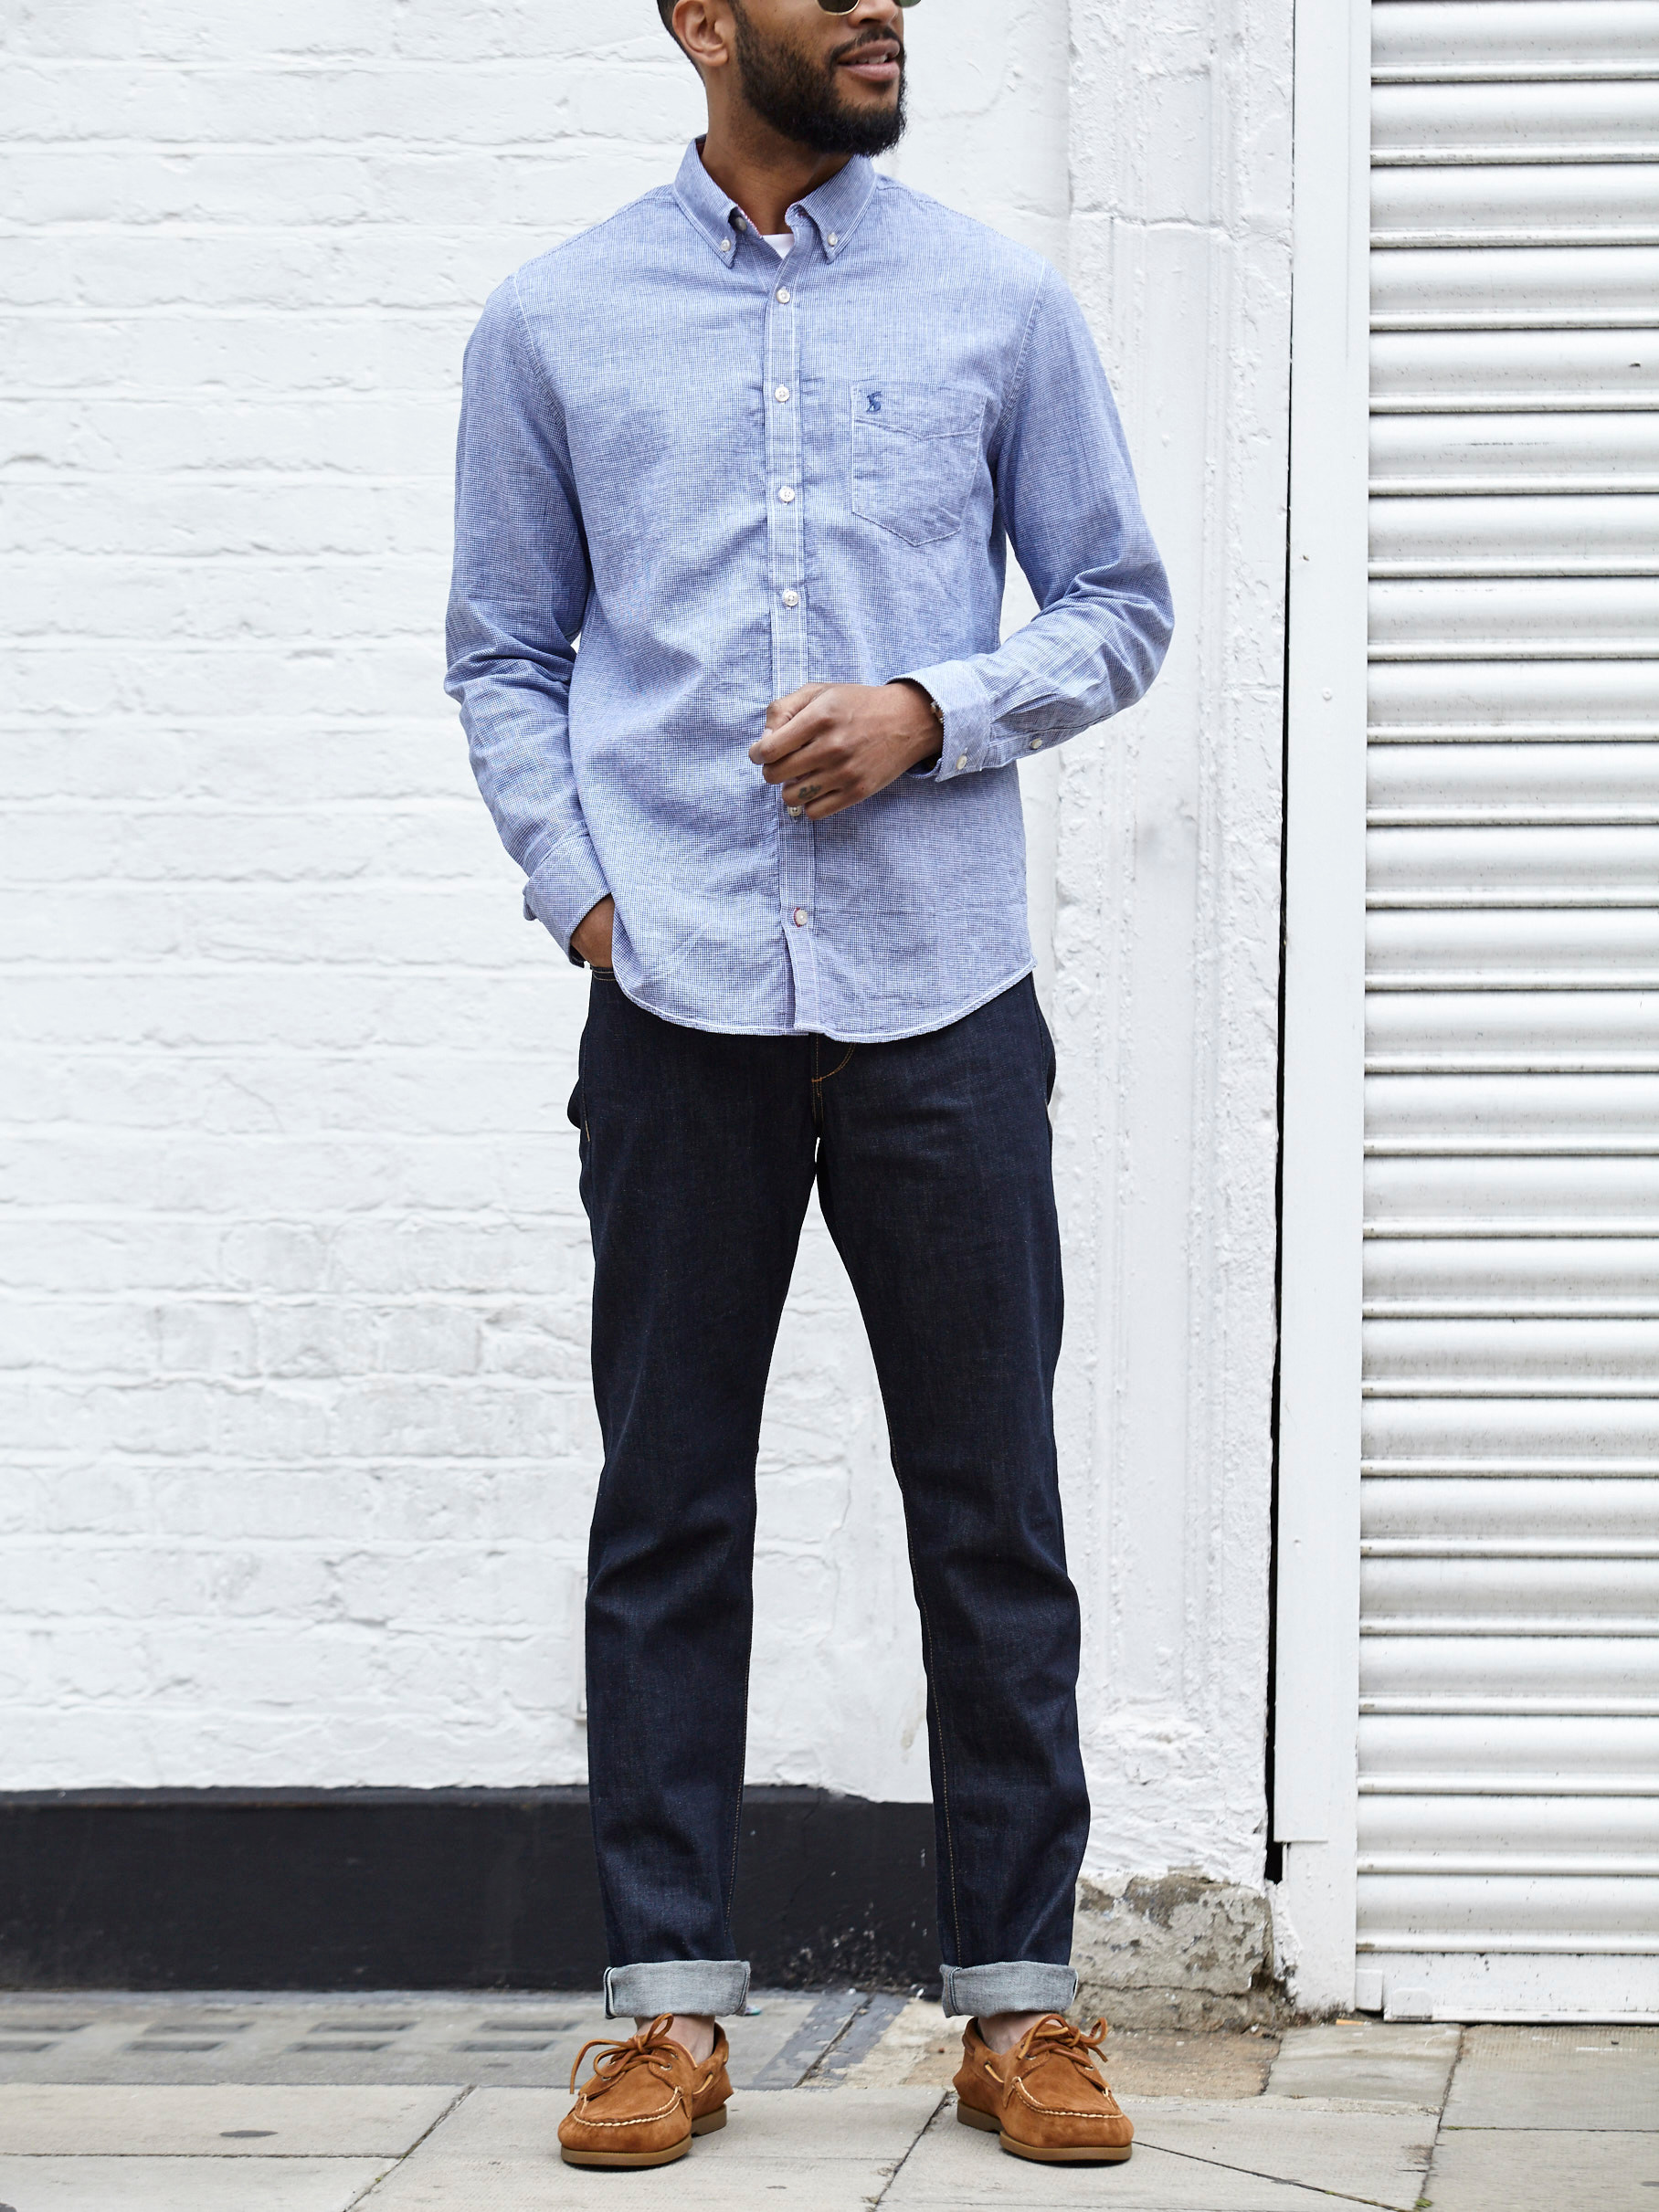 Men's outfit idea for 2021 with linen shirt, white crew neck t-shirt, dark blue jeans, boat shoes. Suitable for spring and summer.